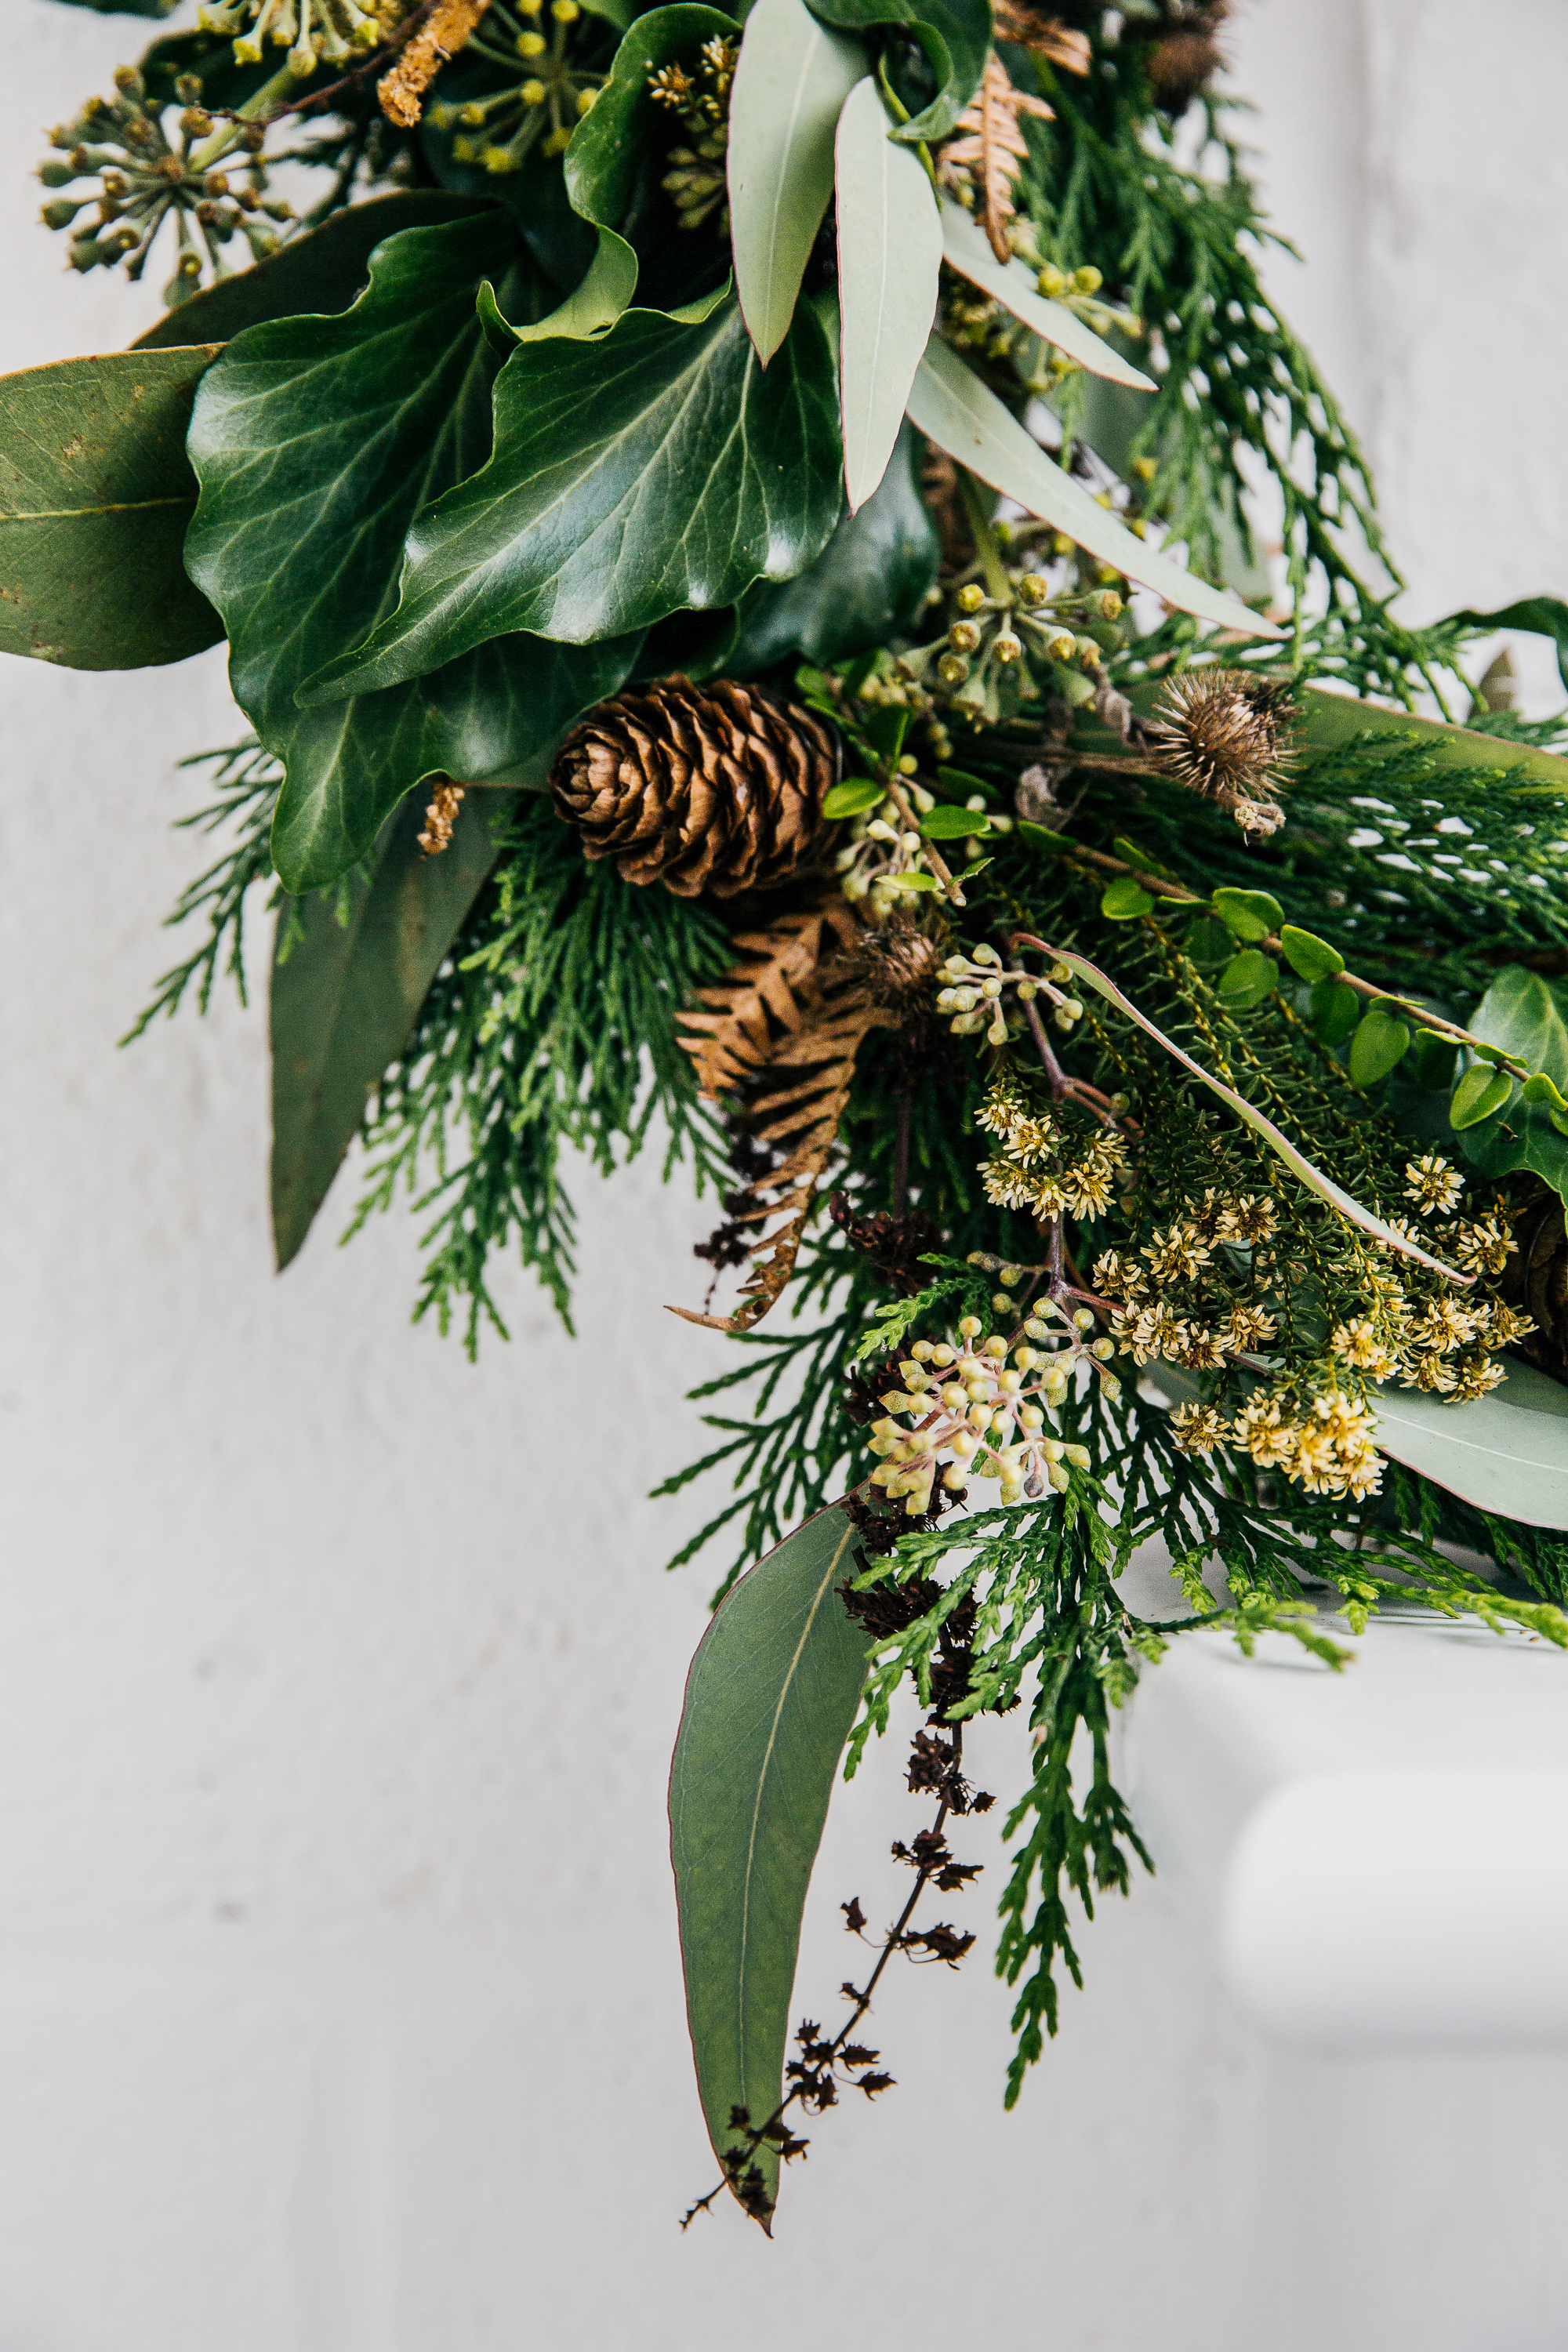 Wreath Making with RoCo at Rye London